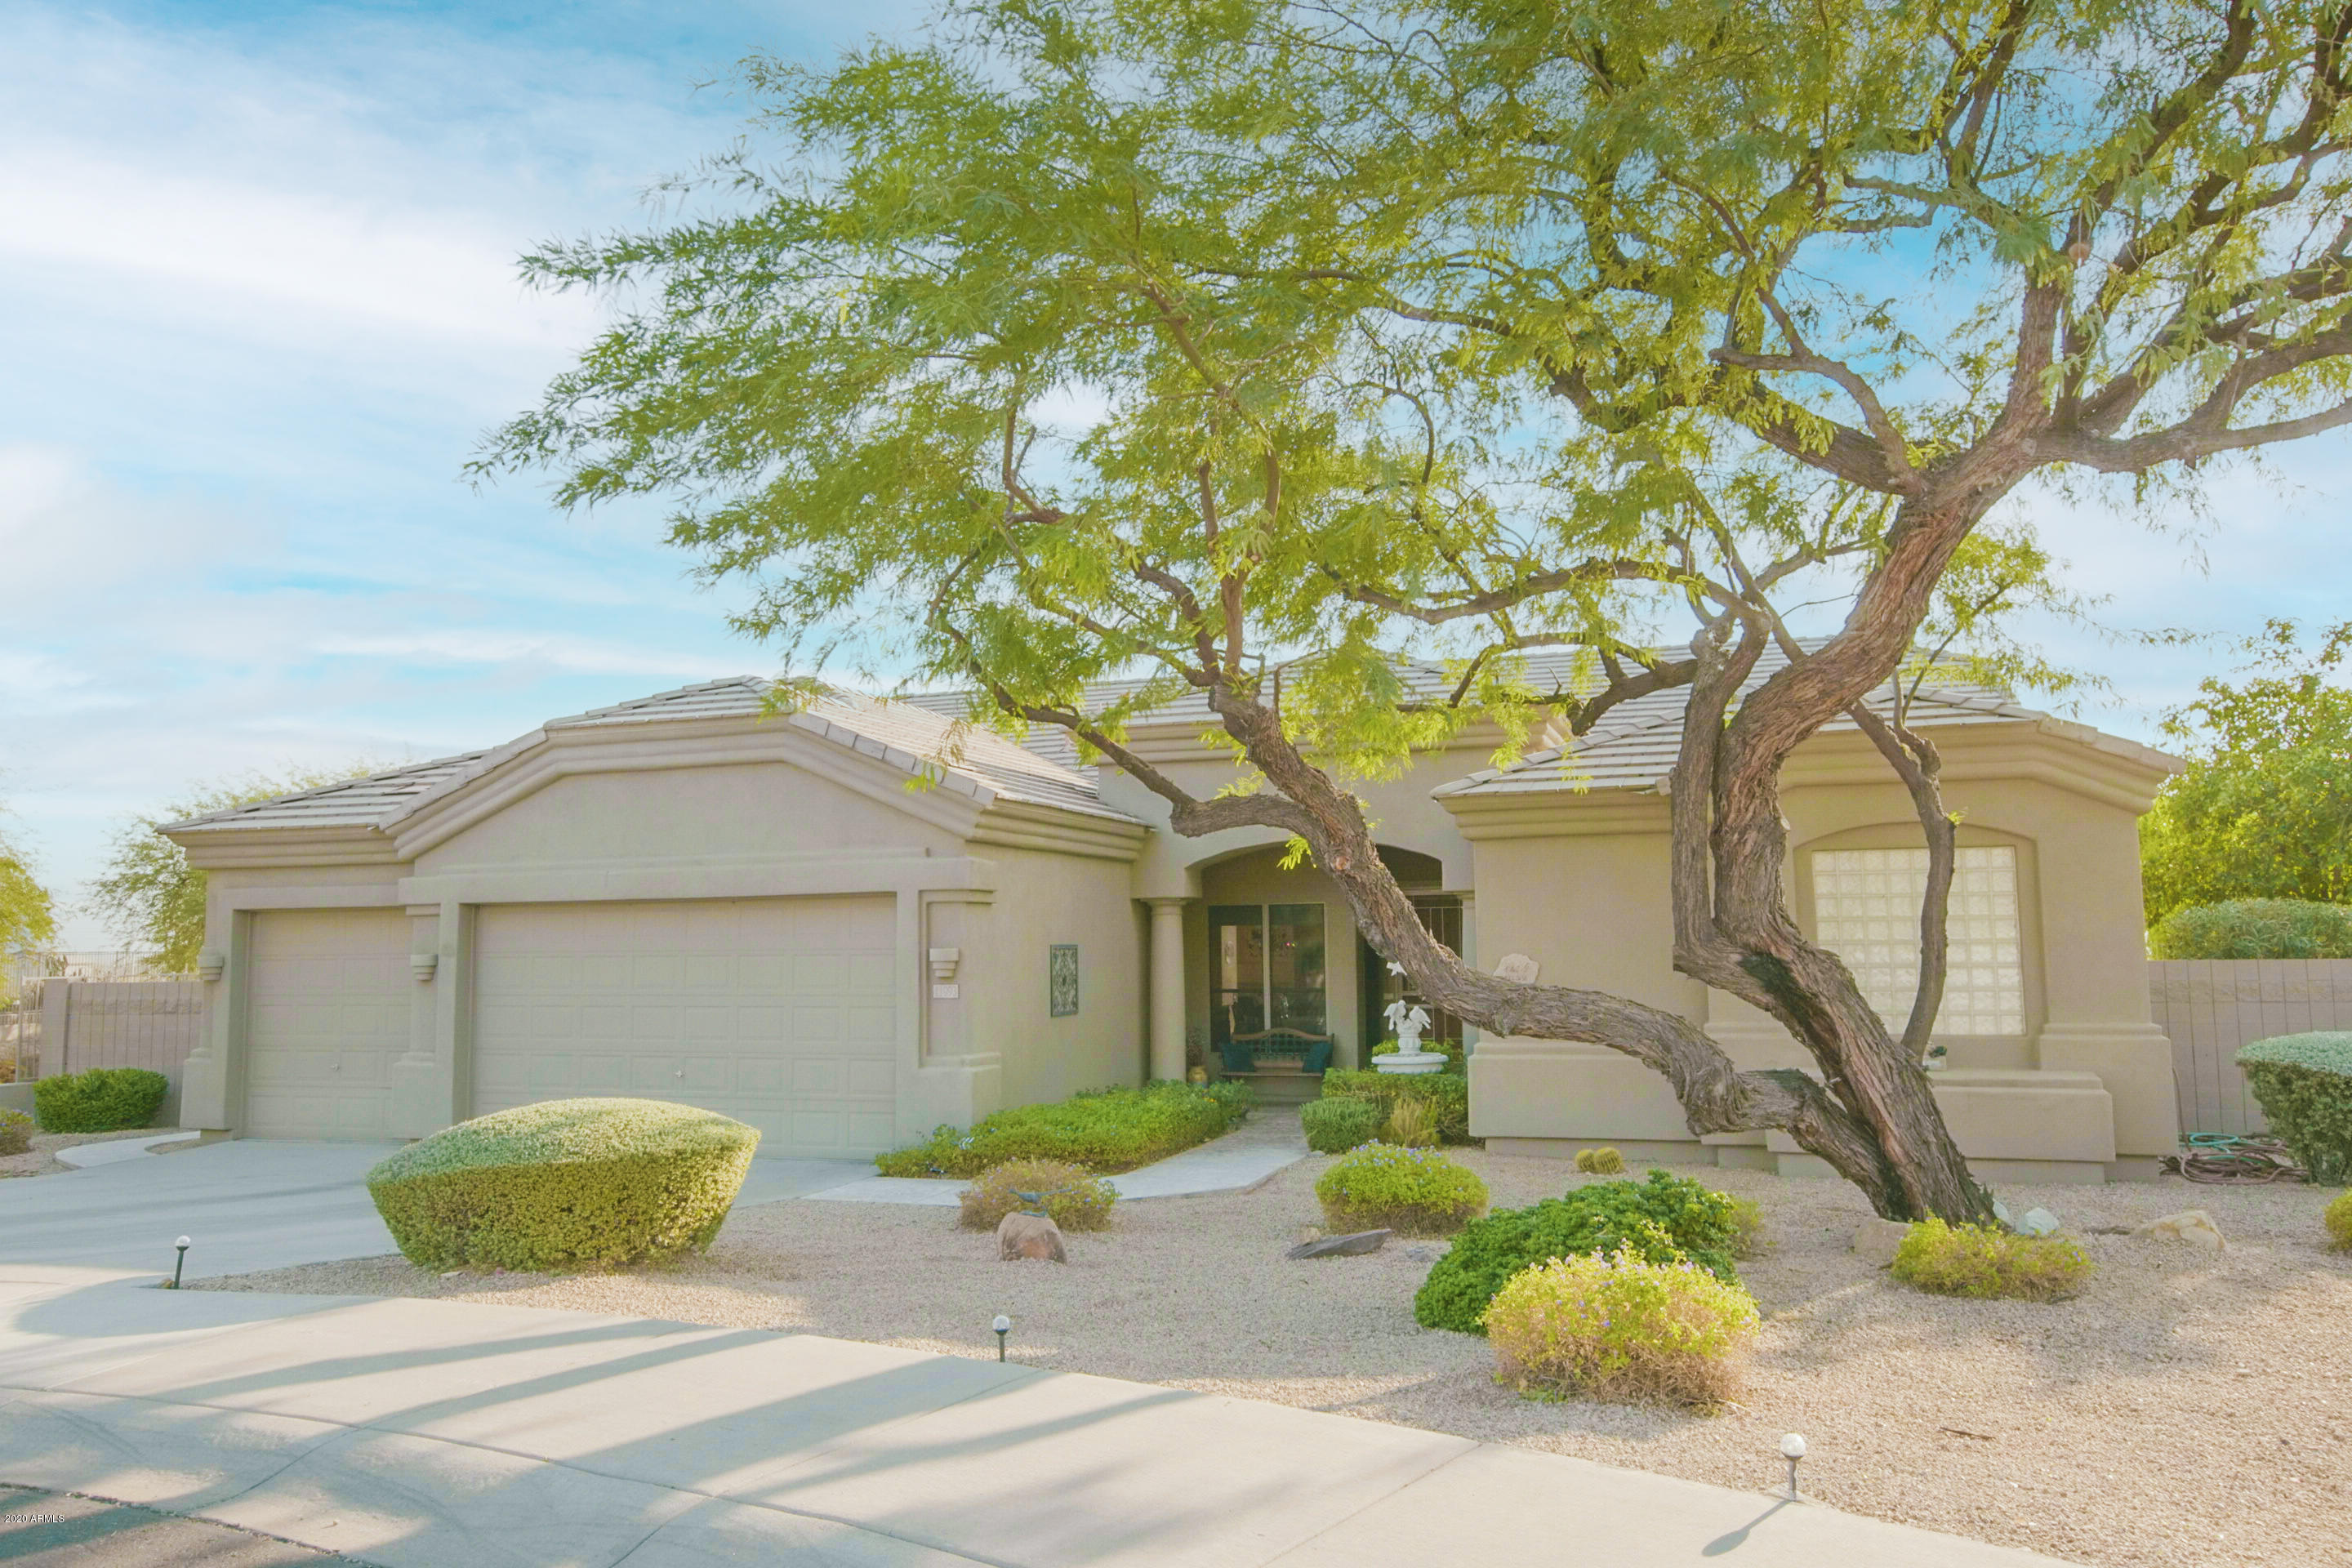 11993 E MERCER Lane, Scottsdale AZ 85259